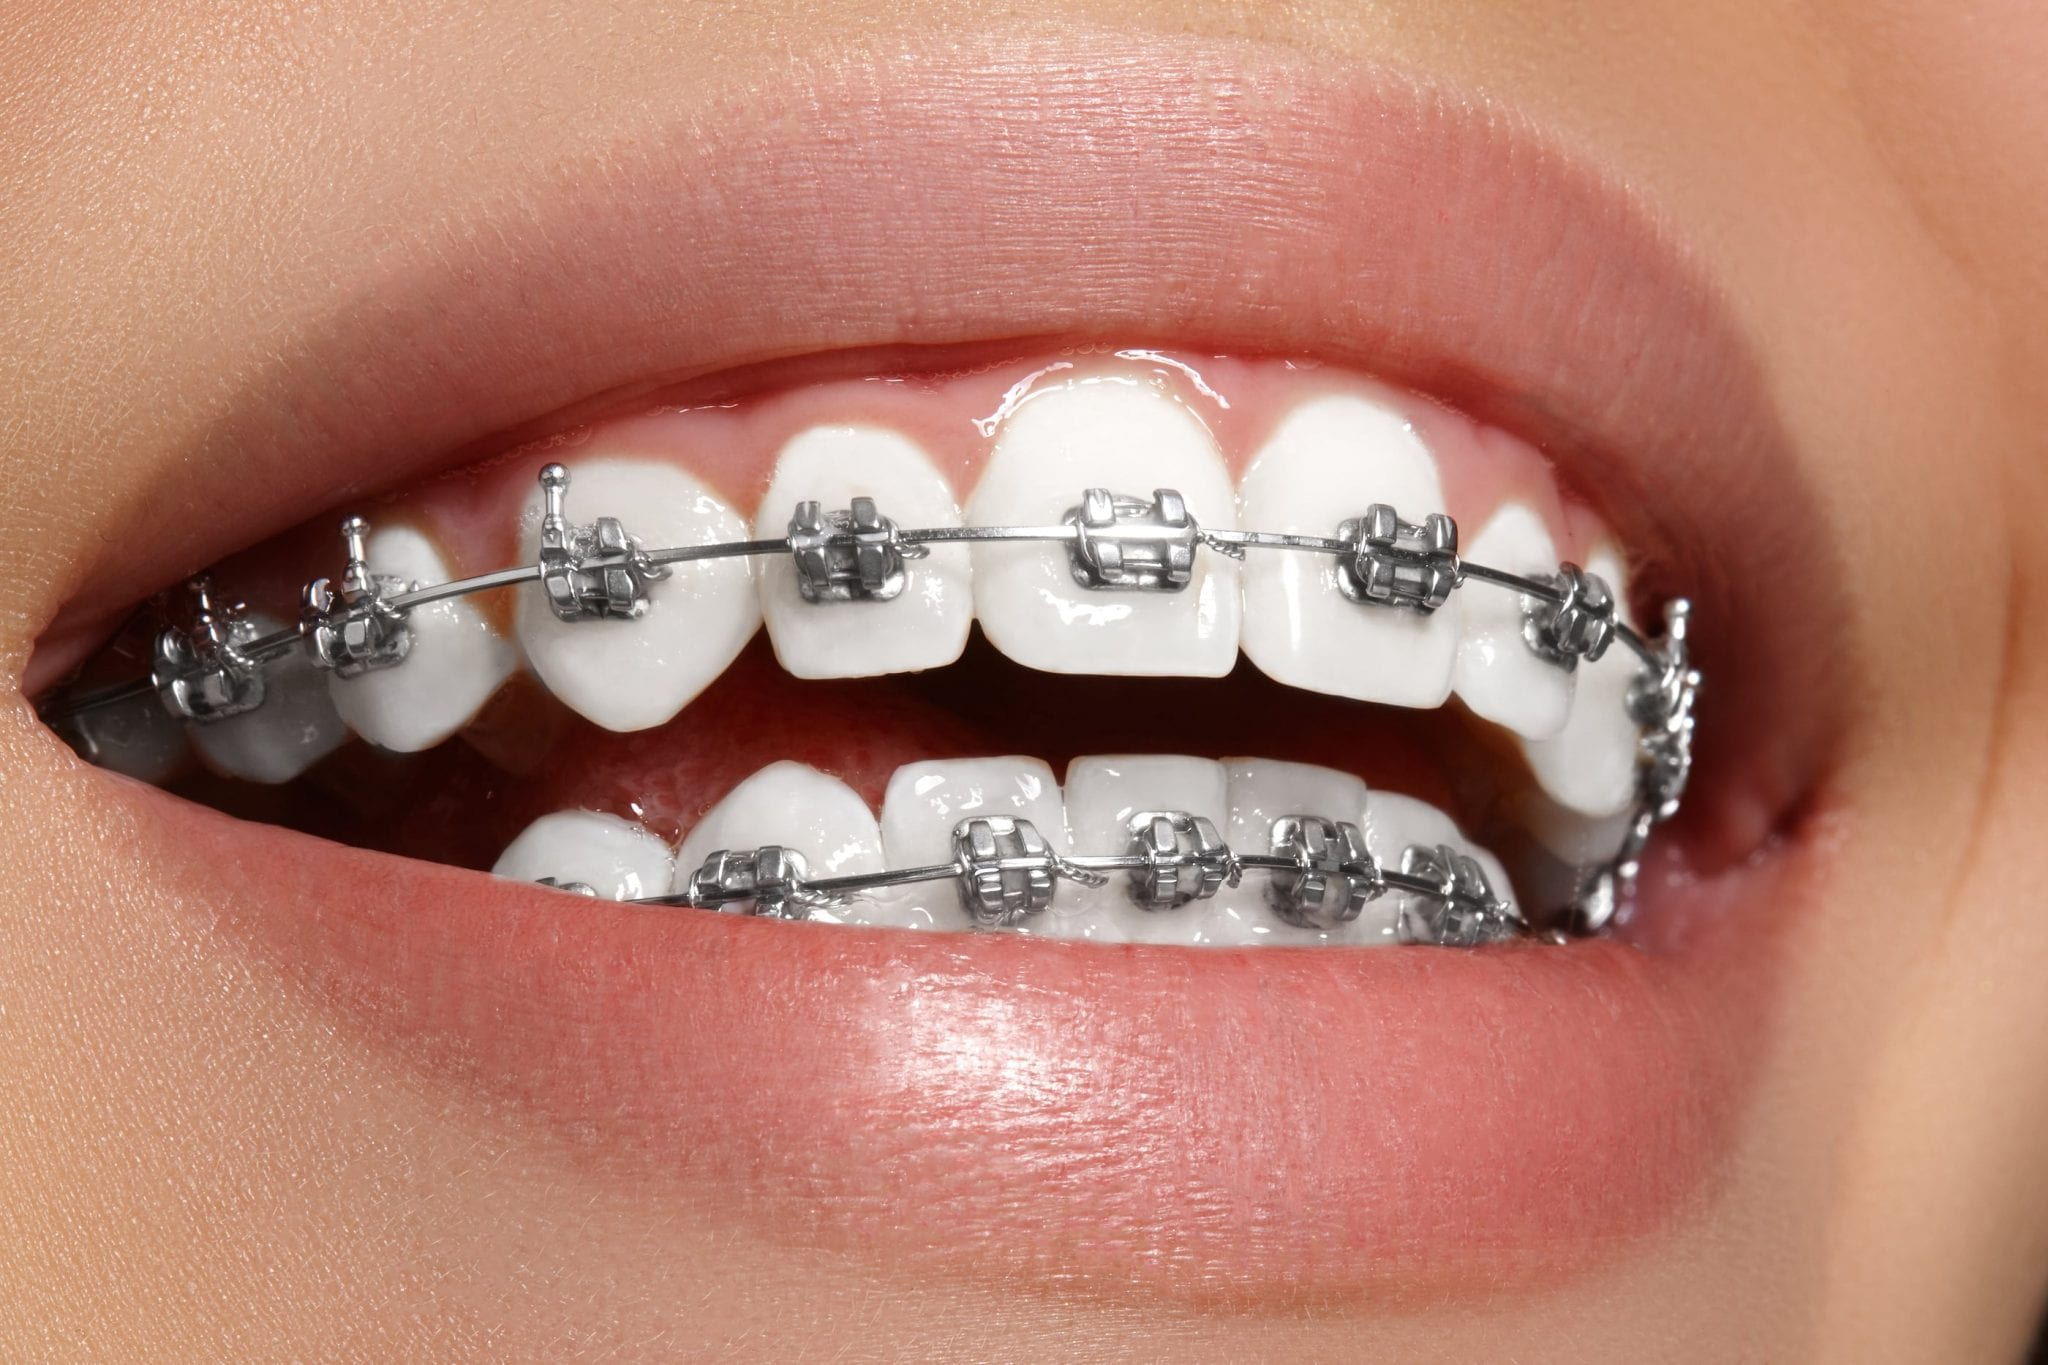 Beautiful macro shot of white teeth with braces. Dental care photo. Beauty woman smile with ortodontic accessories. Orthodontics treatment. Closeup of healthy adult female mouth